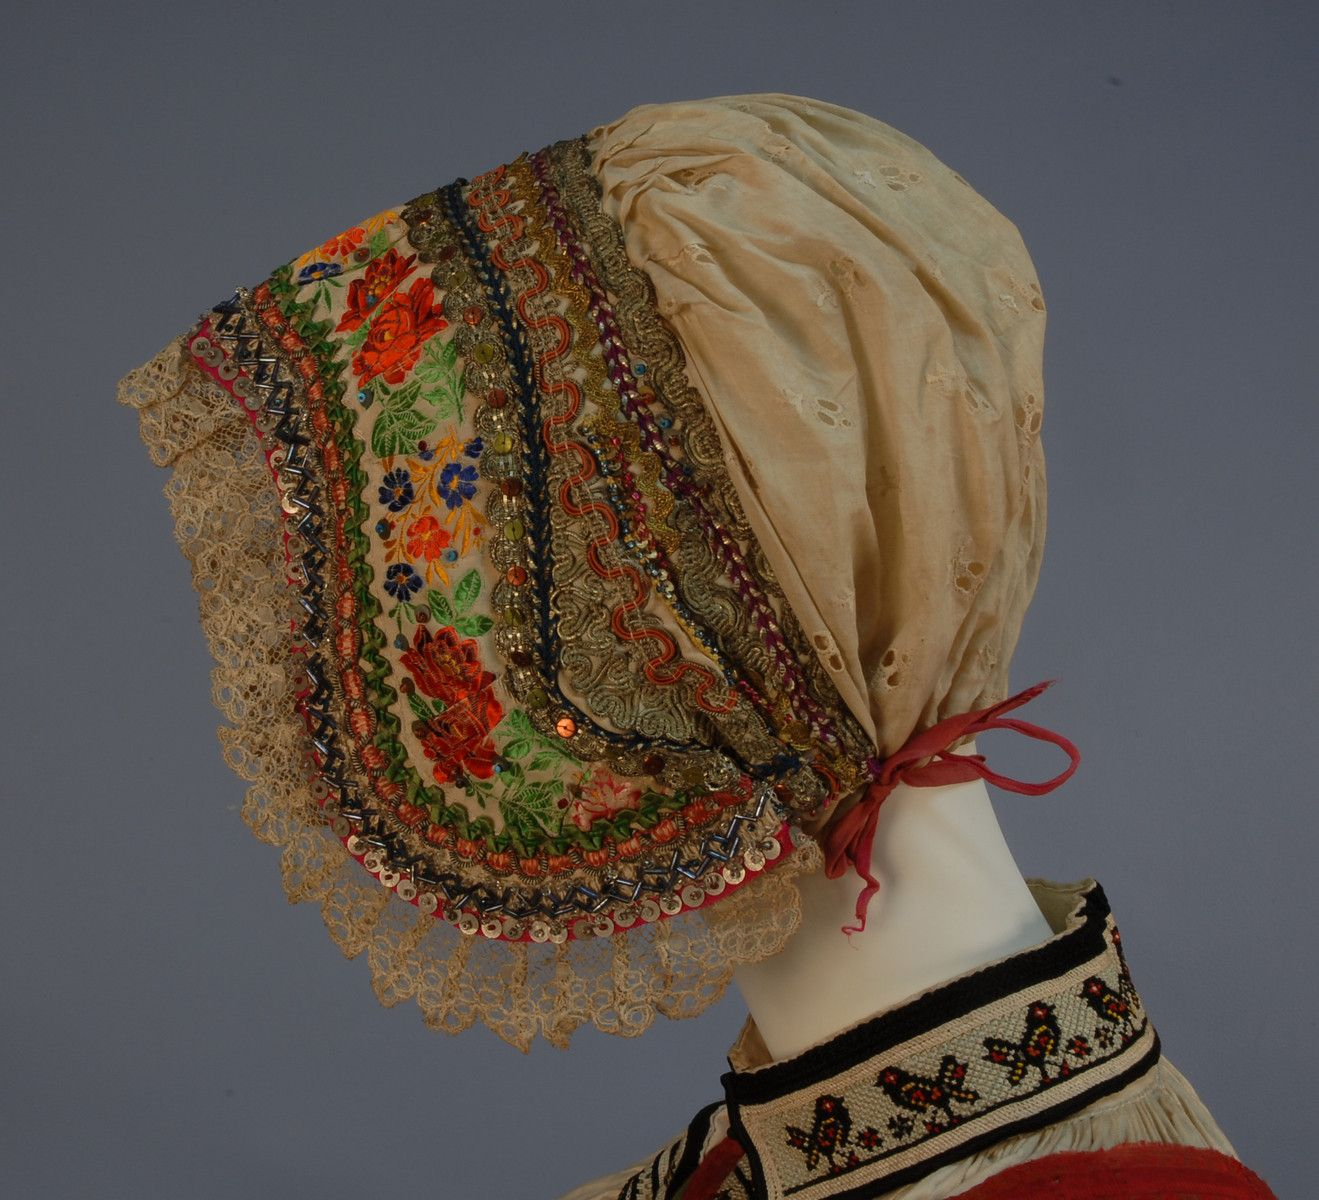 MORAVIAN KROJ or CZECH FOLK COSTUME, 19th-EARLY 20th C. Printed silk and wool skirt trimmed with red and yellow lace, navy apron with floral embroidery, tie dyed stripes and lace trim, brocaded vest in red, green, purple and yellow, embroidered blouse, three embroidered caps-two with beadwork and metallic threads, short sash.